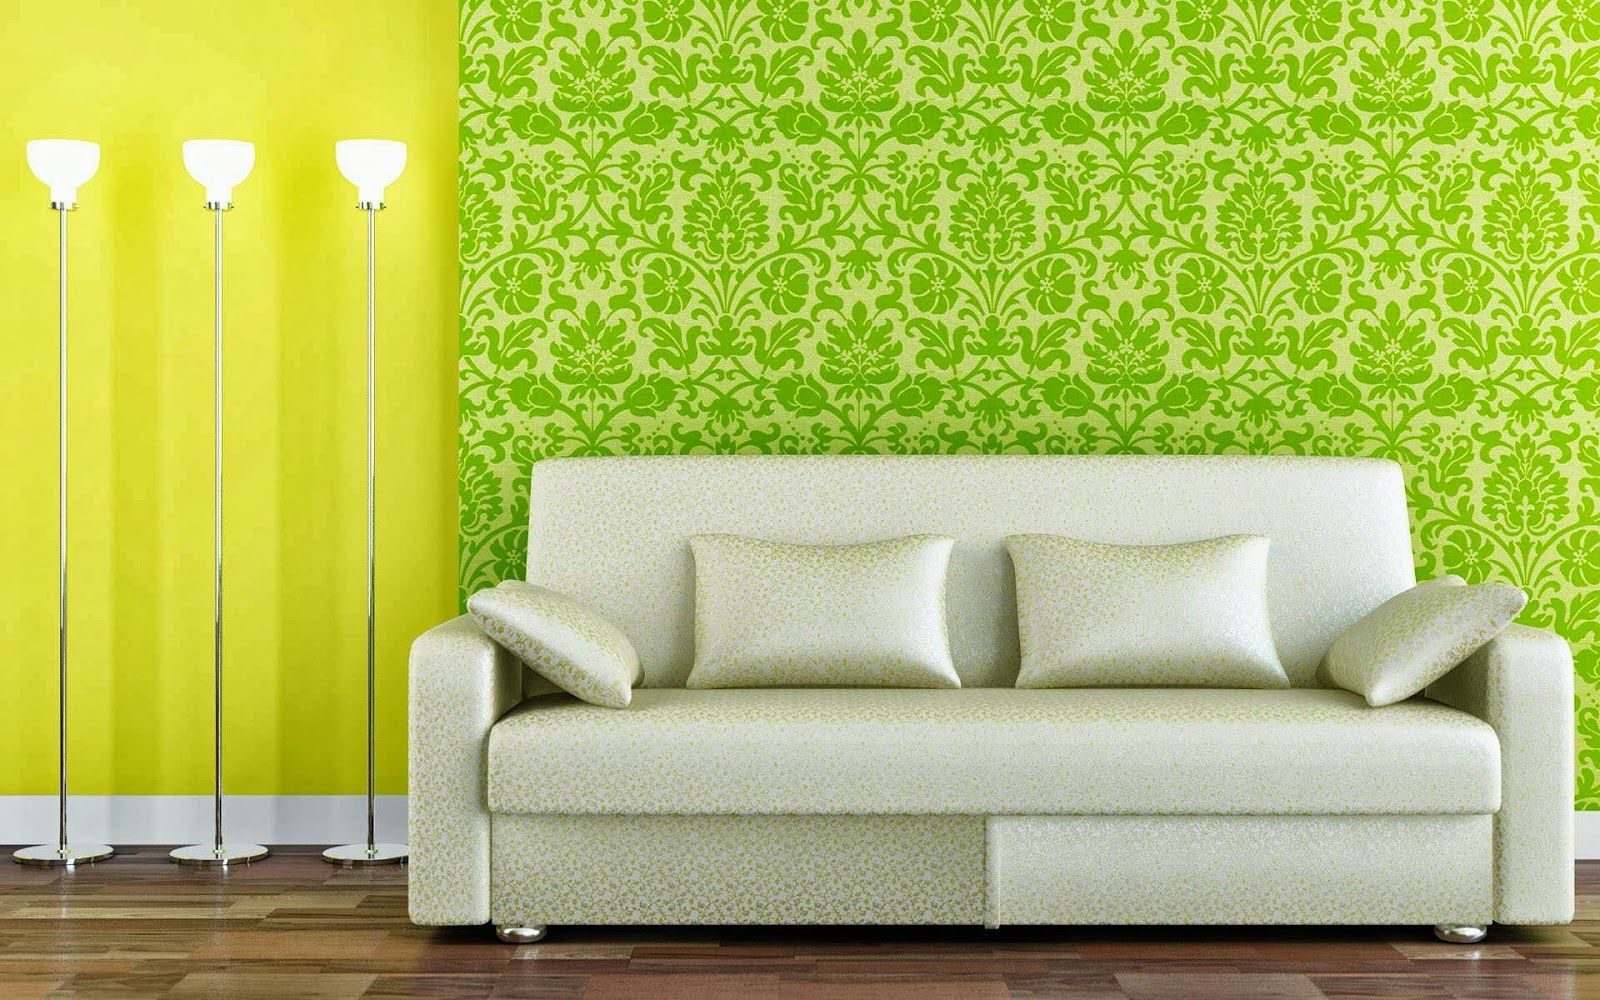 Explore Beautiful Sofas, Wallpaper Stores, And More!